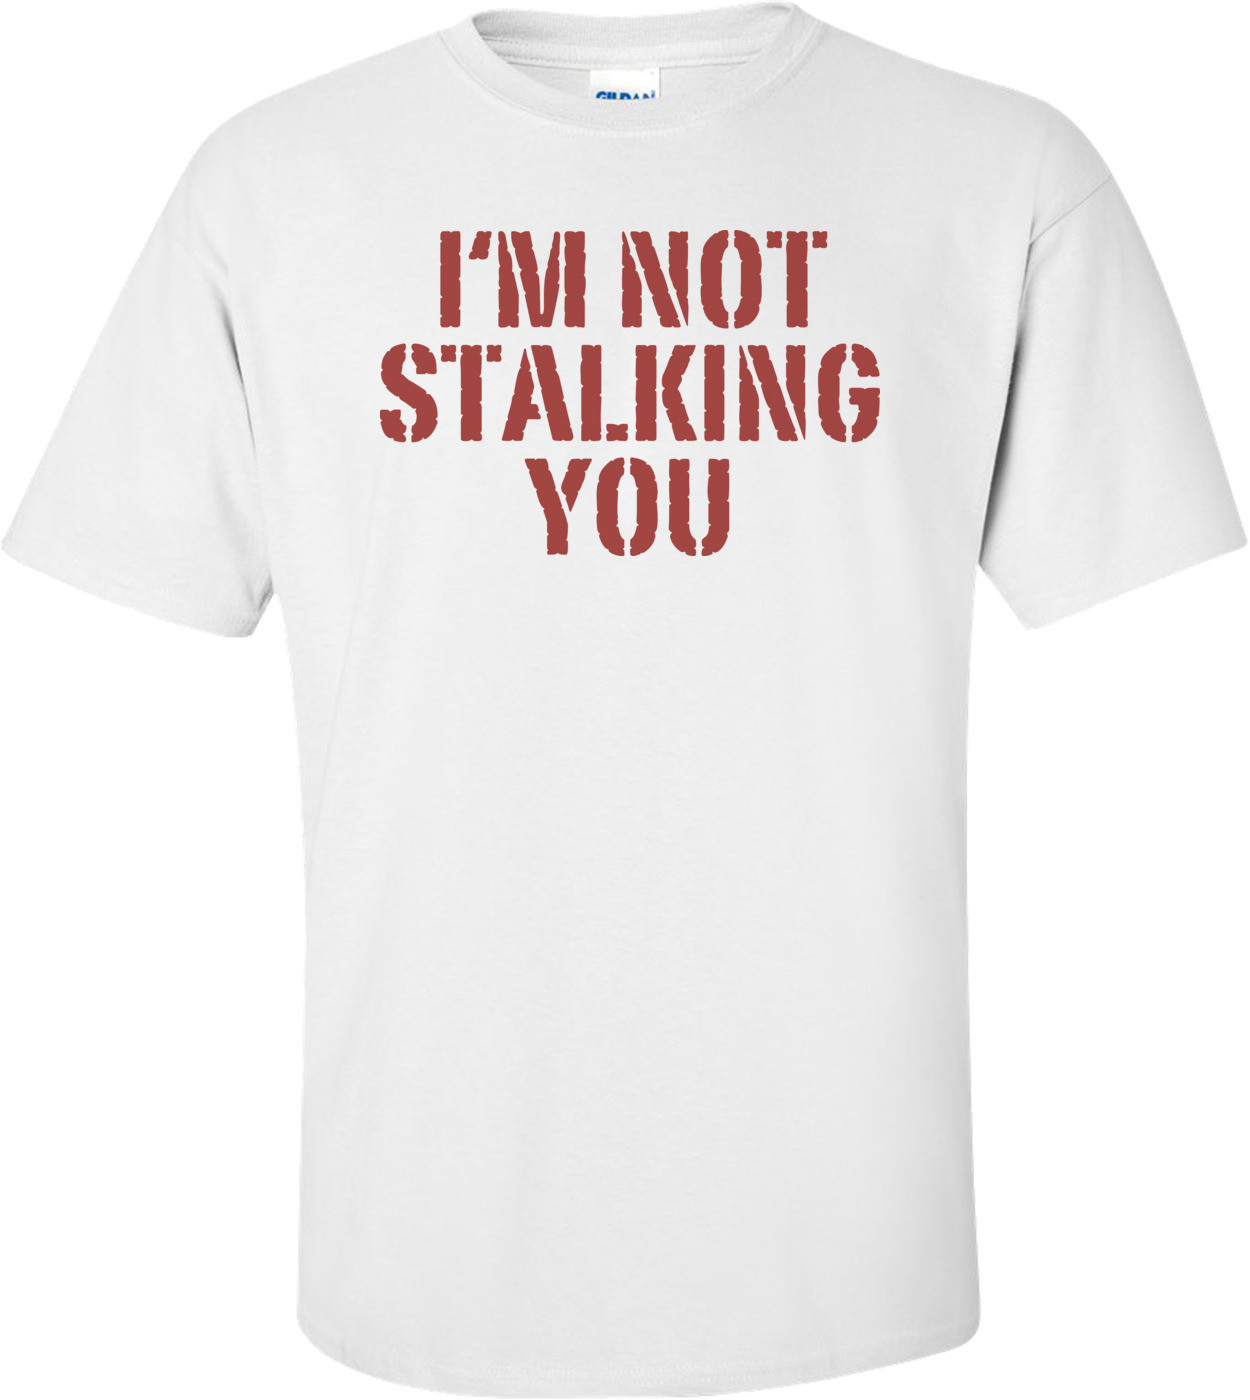 I'm Not Stalking You T-shirt